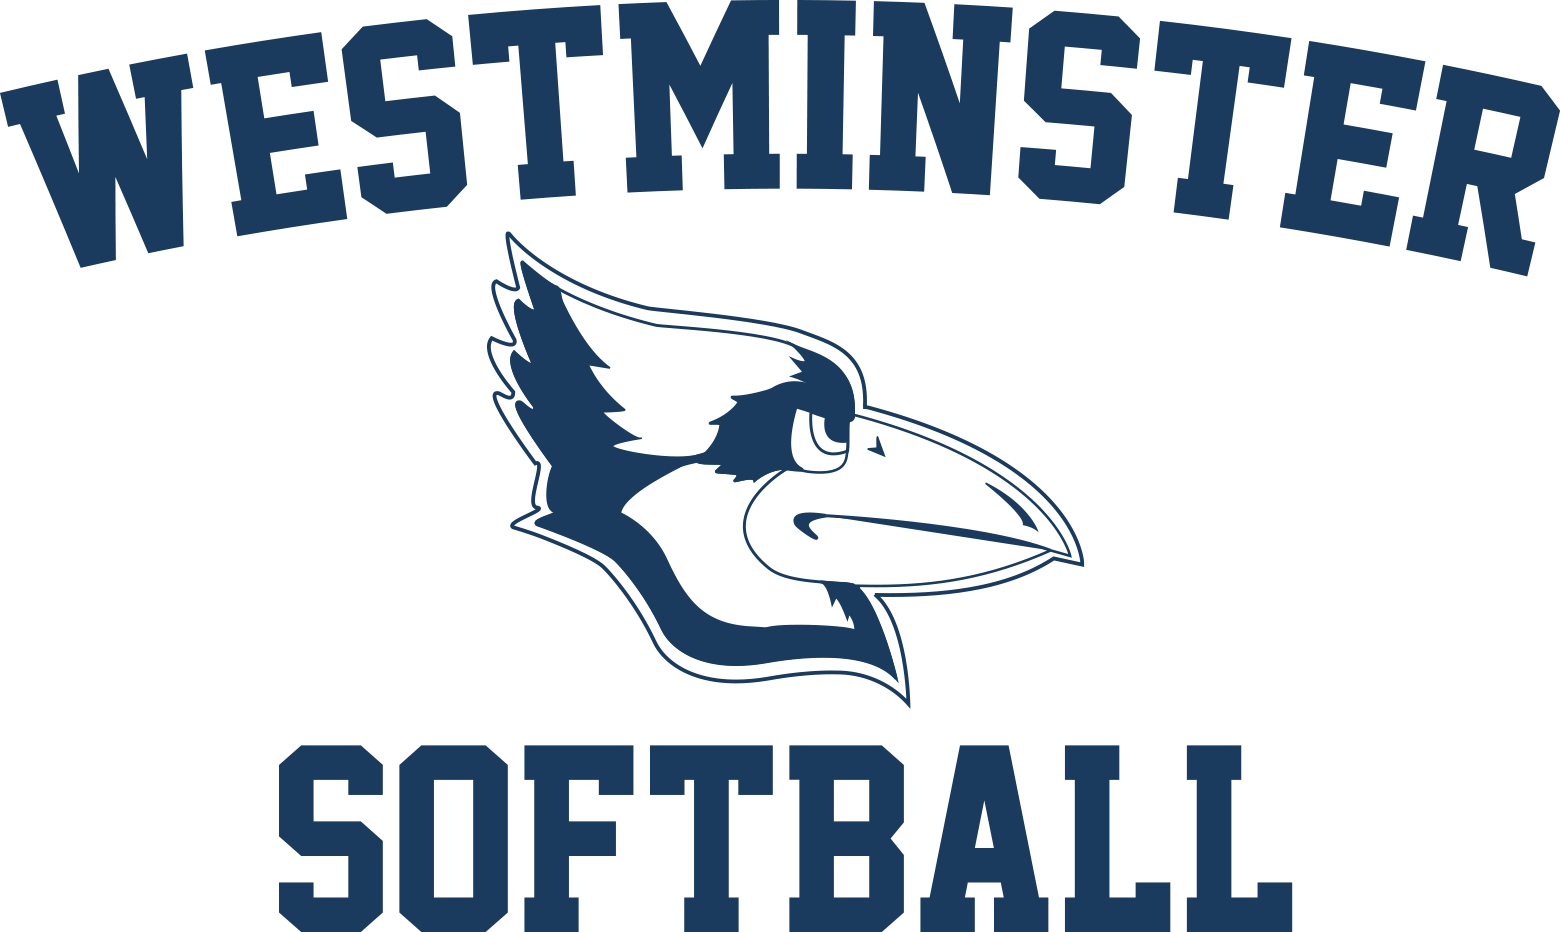 Westminster Softball Announces Incoming Fall Recruiting Class